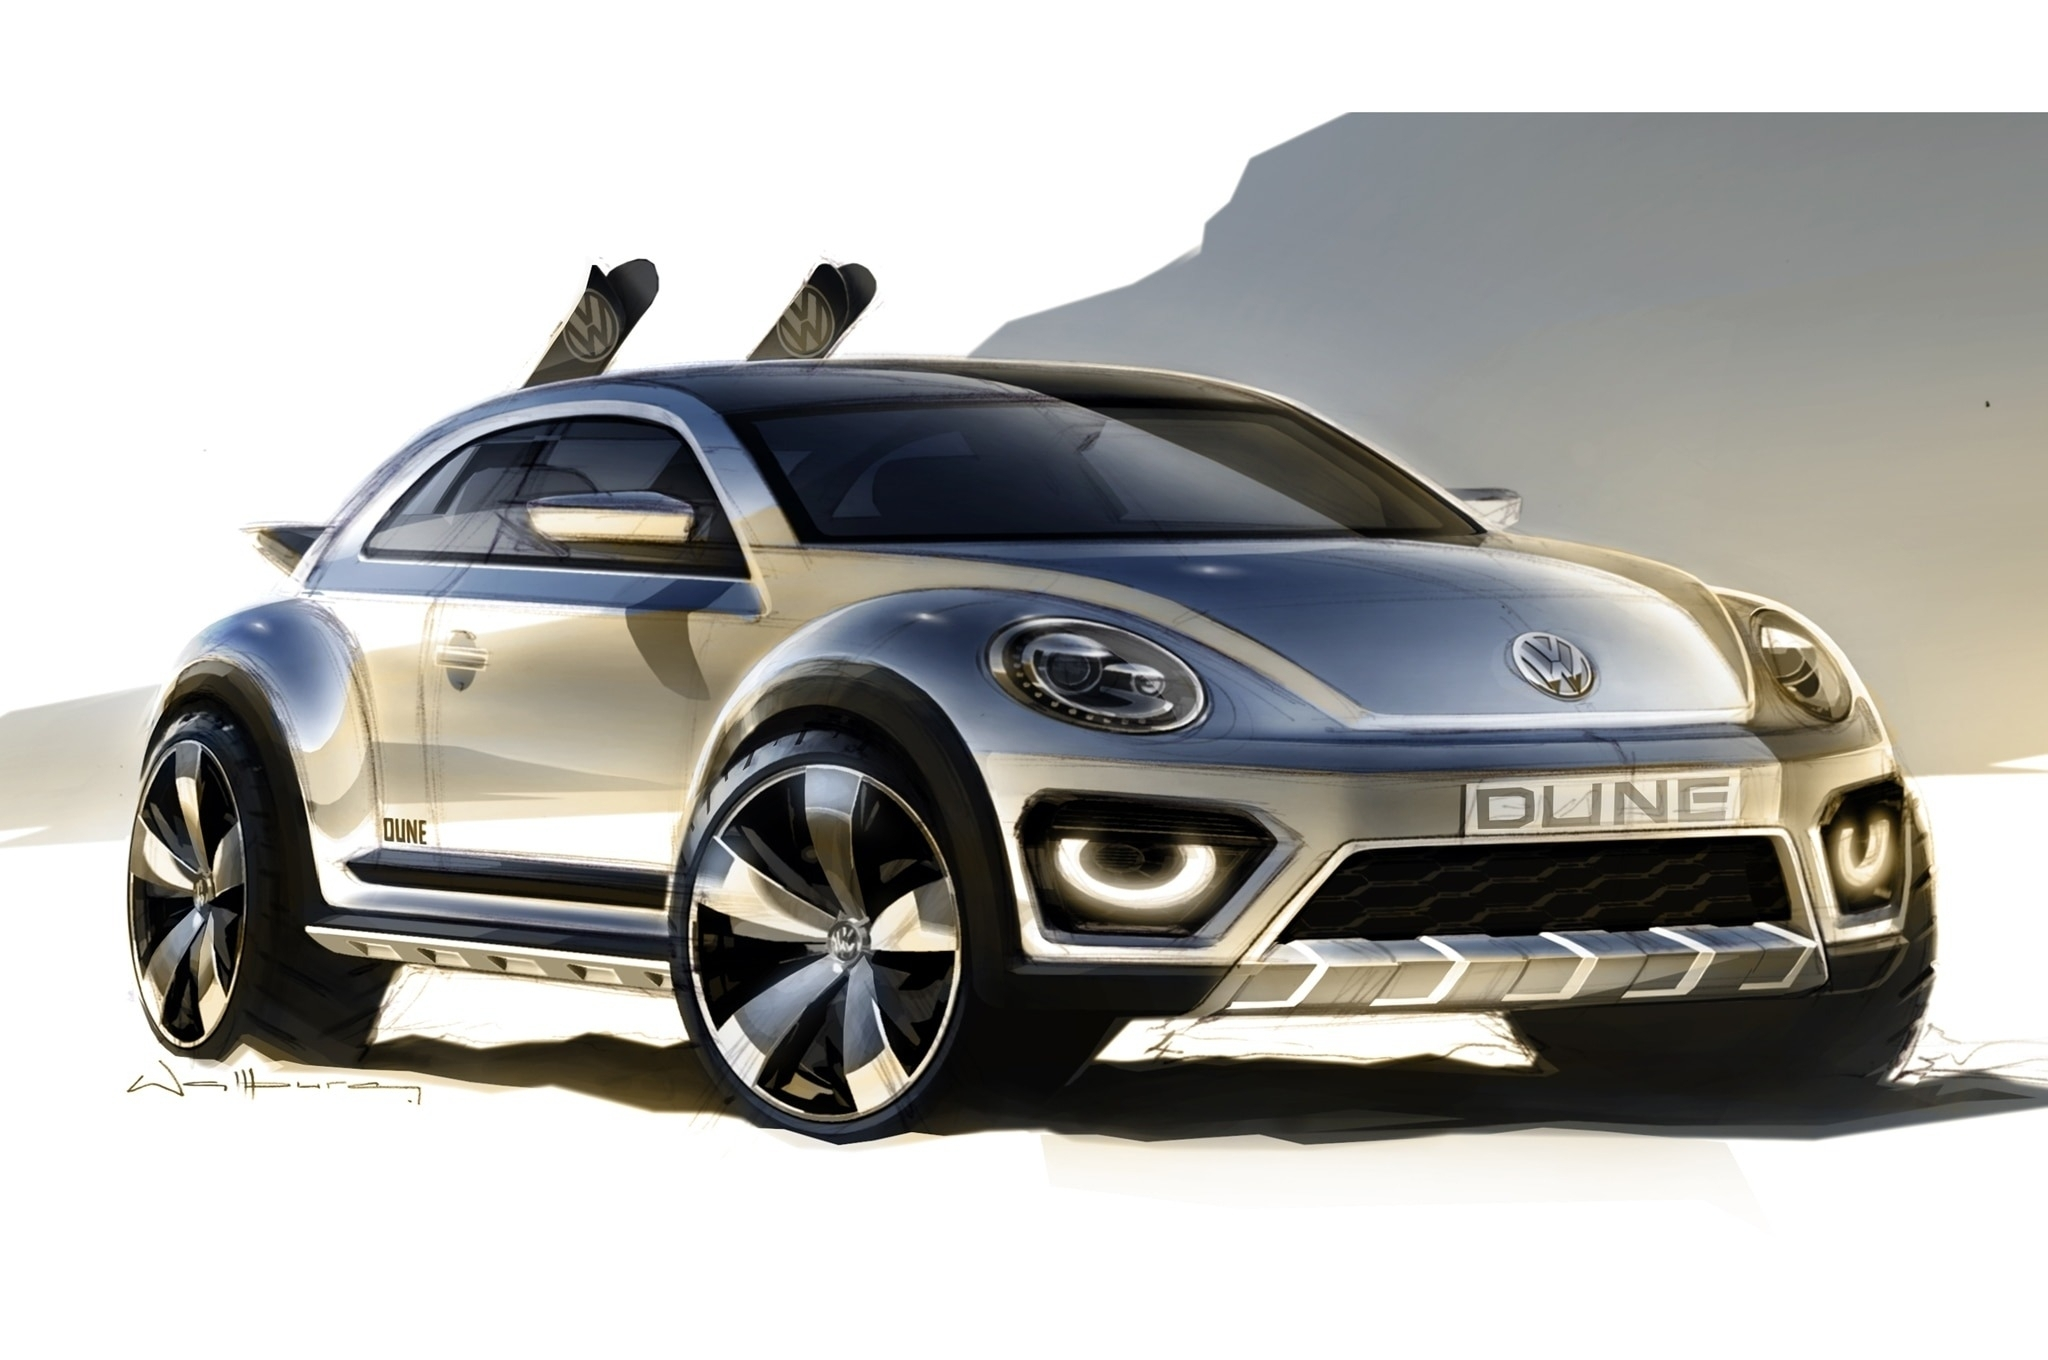 89 Best 2019 Vw Beetle Dune Review and Release date